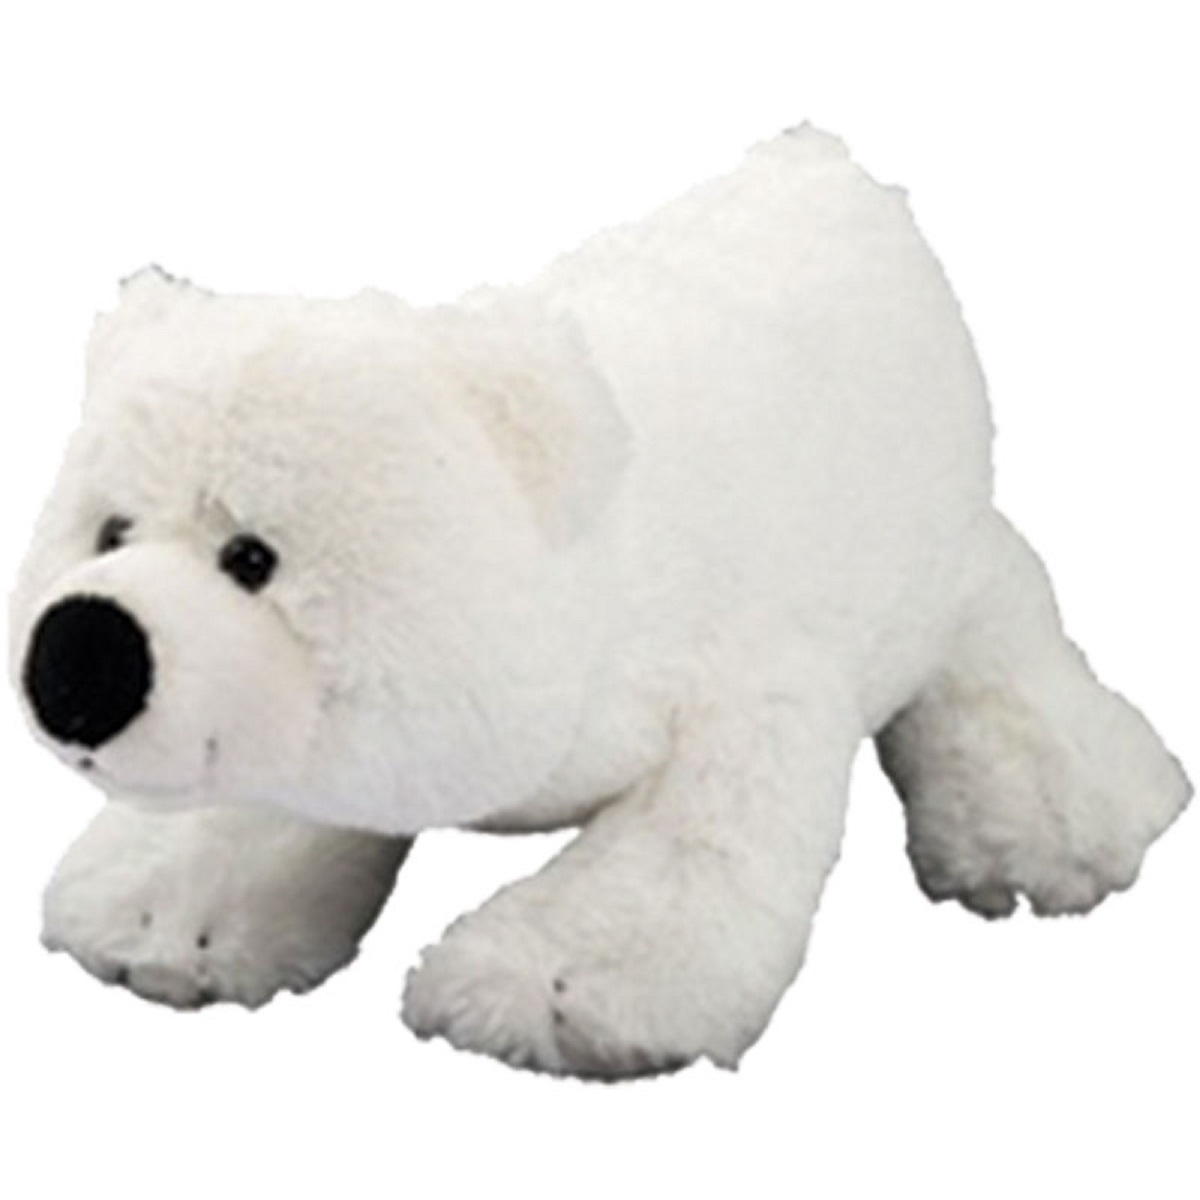 Peluche ours polaire - FREDDY - 60028